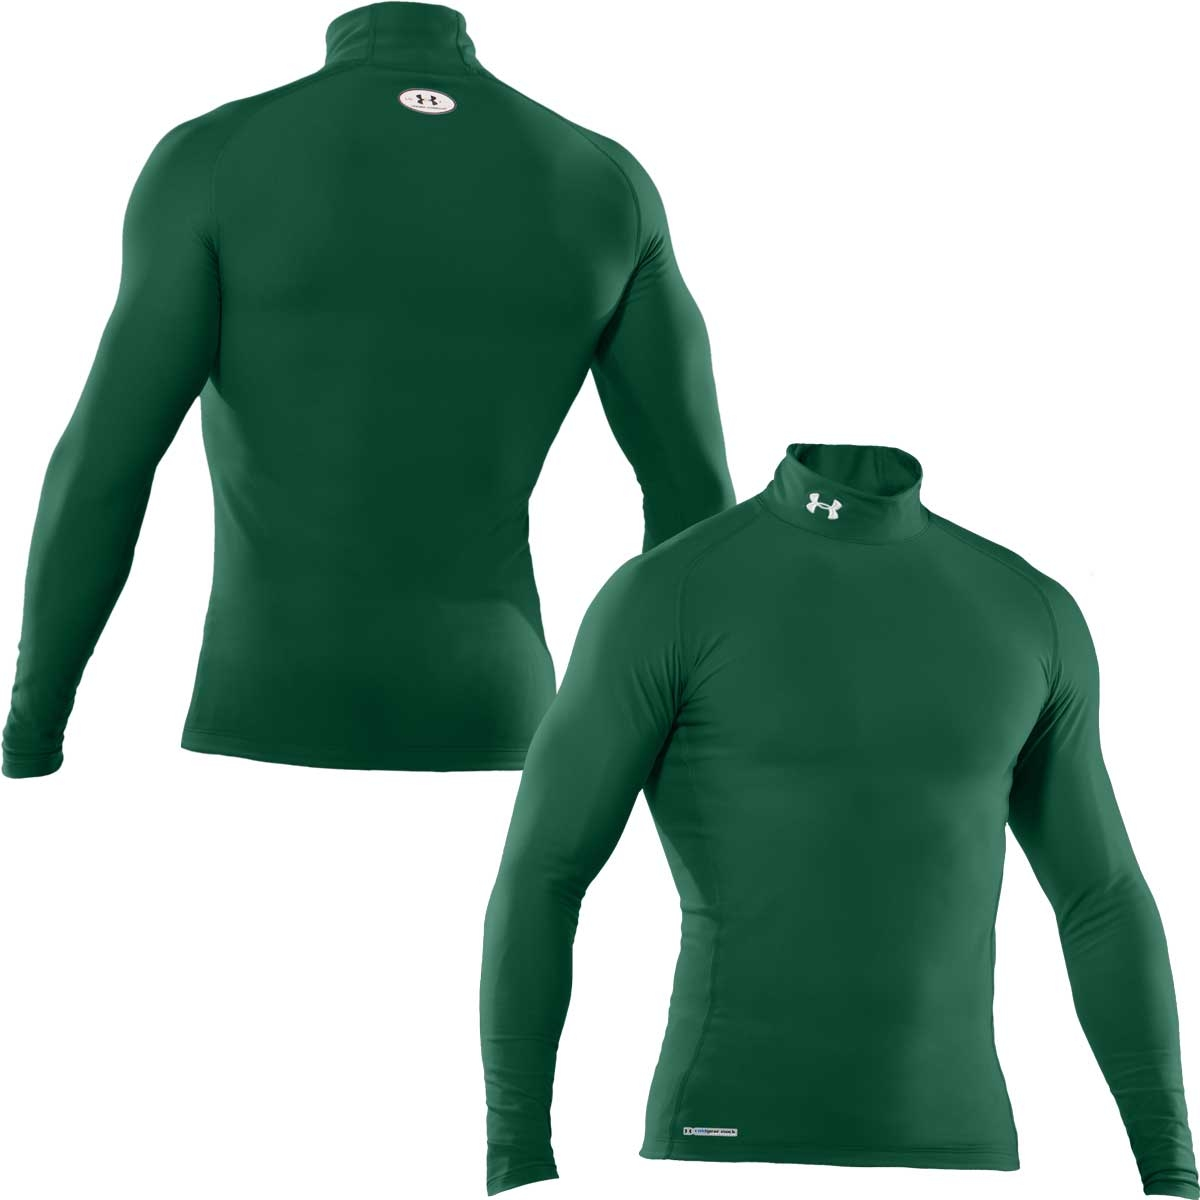 official photos 0f50f 187f7 under armour white mock turtleneck